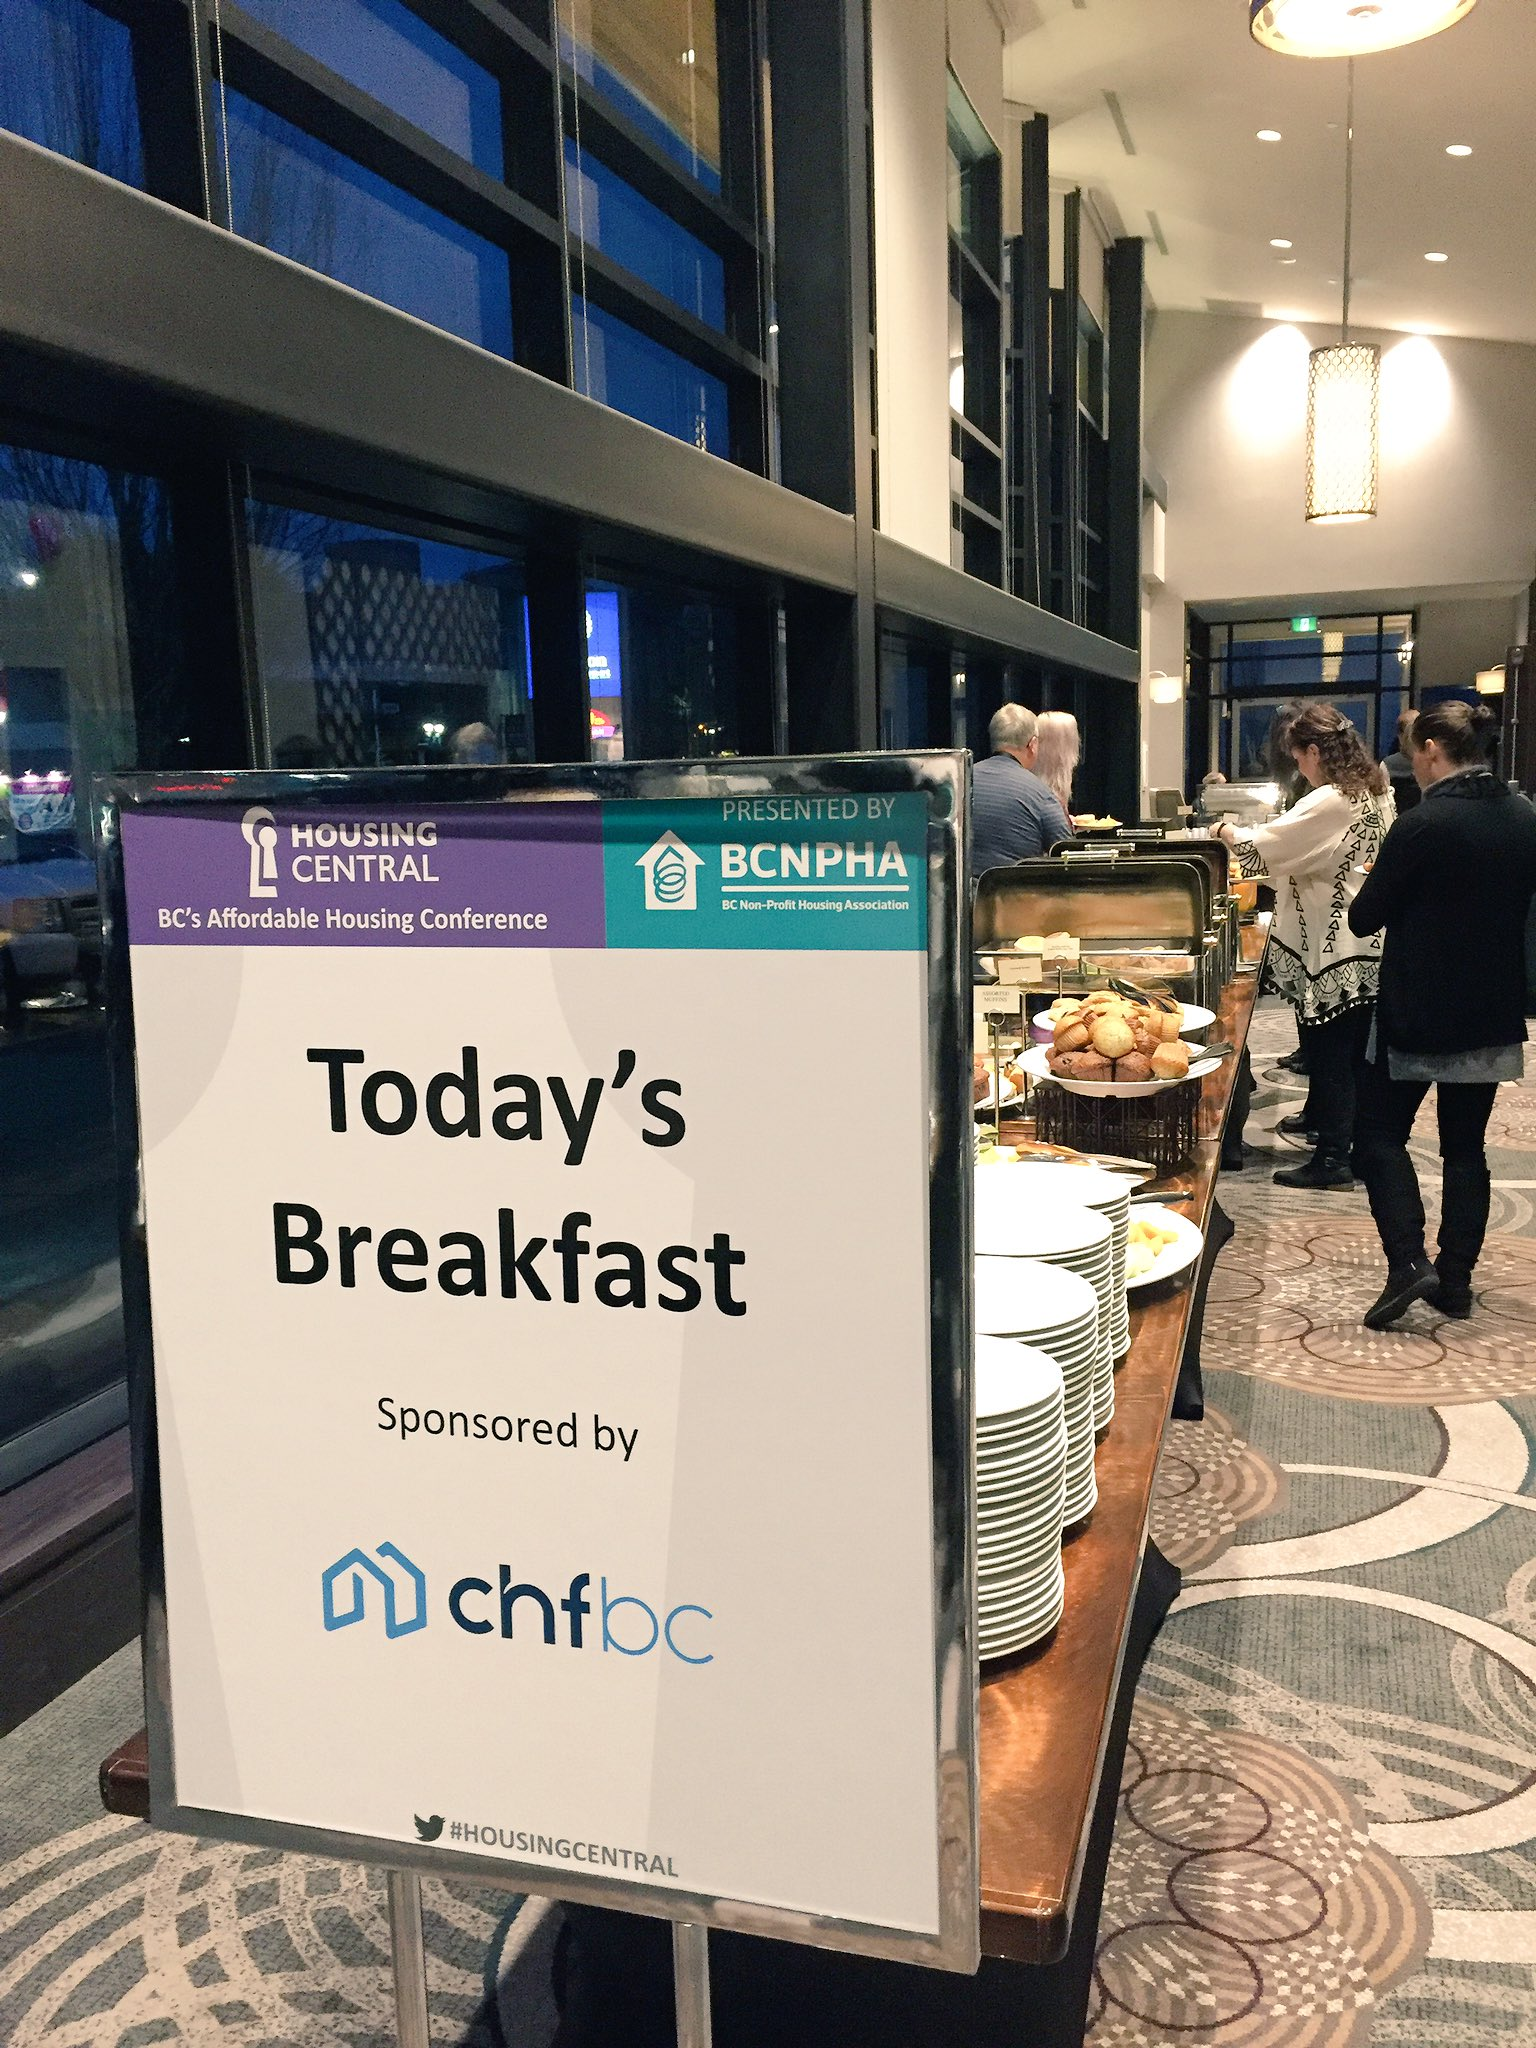 Thank you to #HousingCentral Platinum Sponsor @chfbc for a great first breakfast! Get ready to grab your food and mix + mingle! https://t.co/akyGHsuN2V